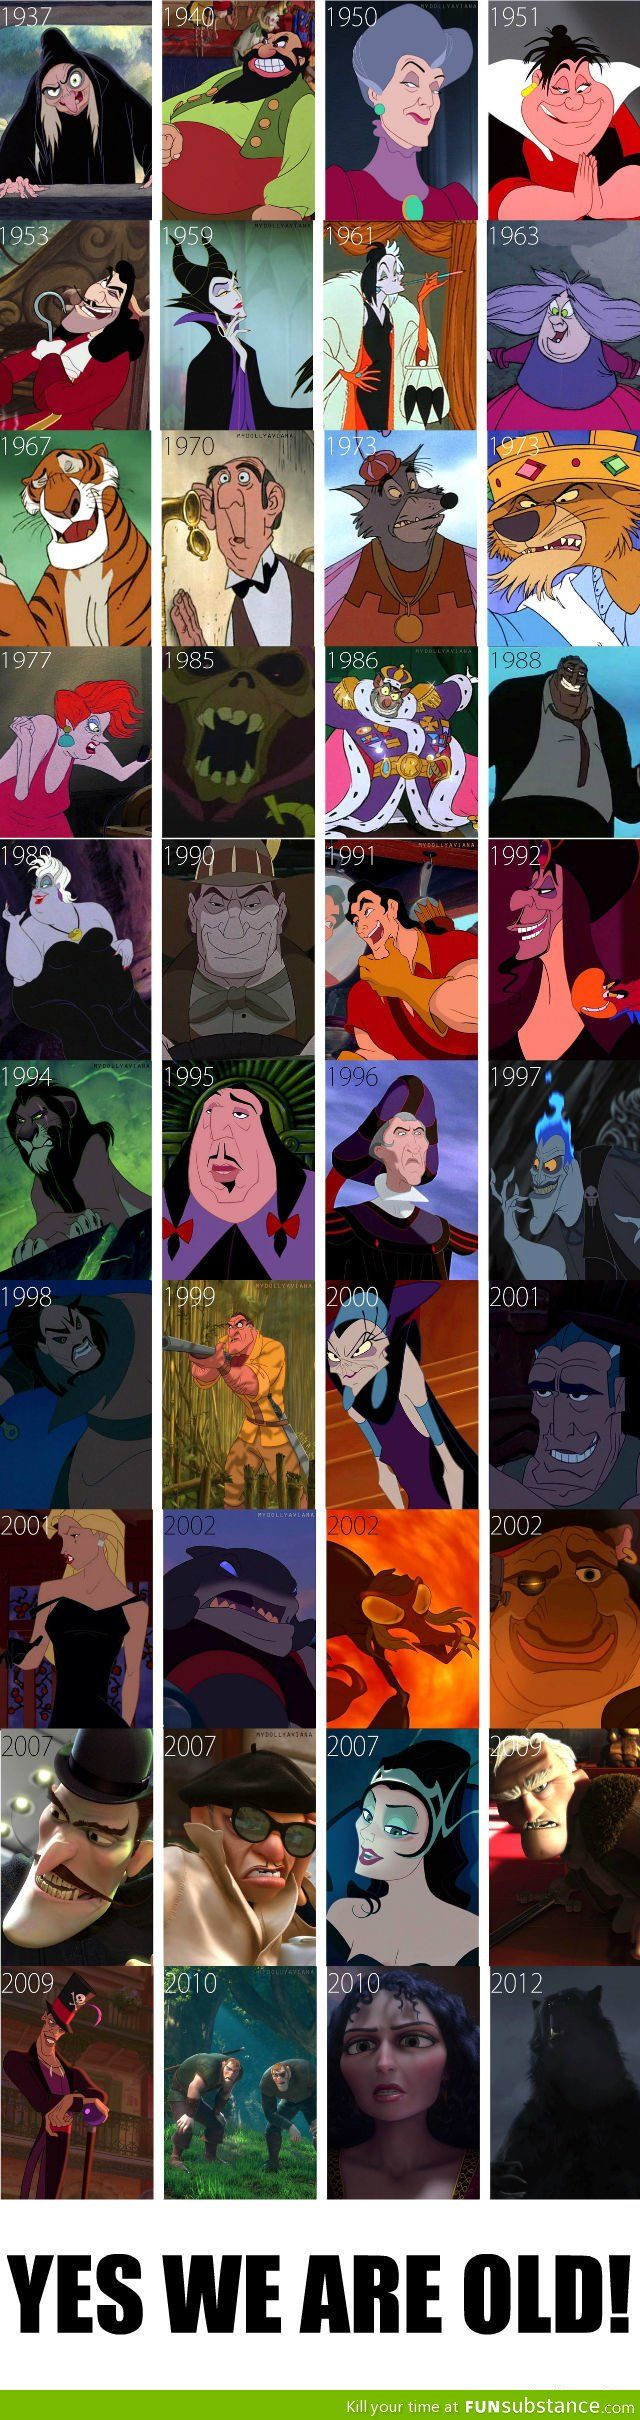 Disney villians.....come to think of it...a lot of the villians are old...